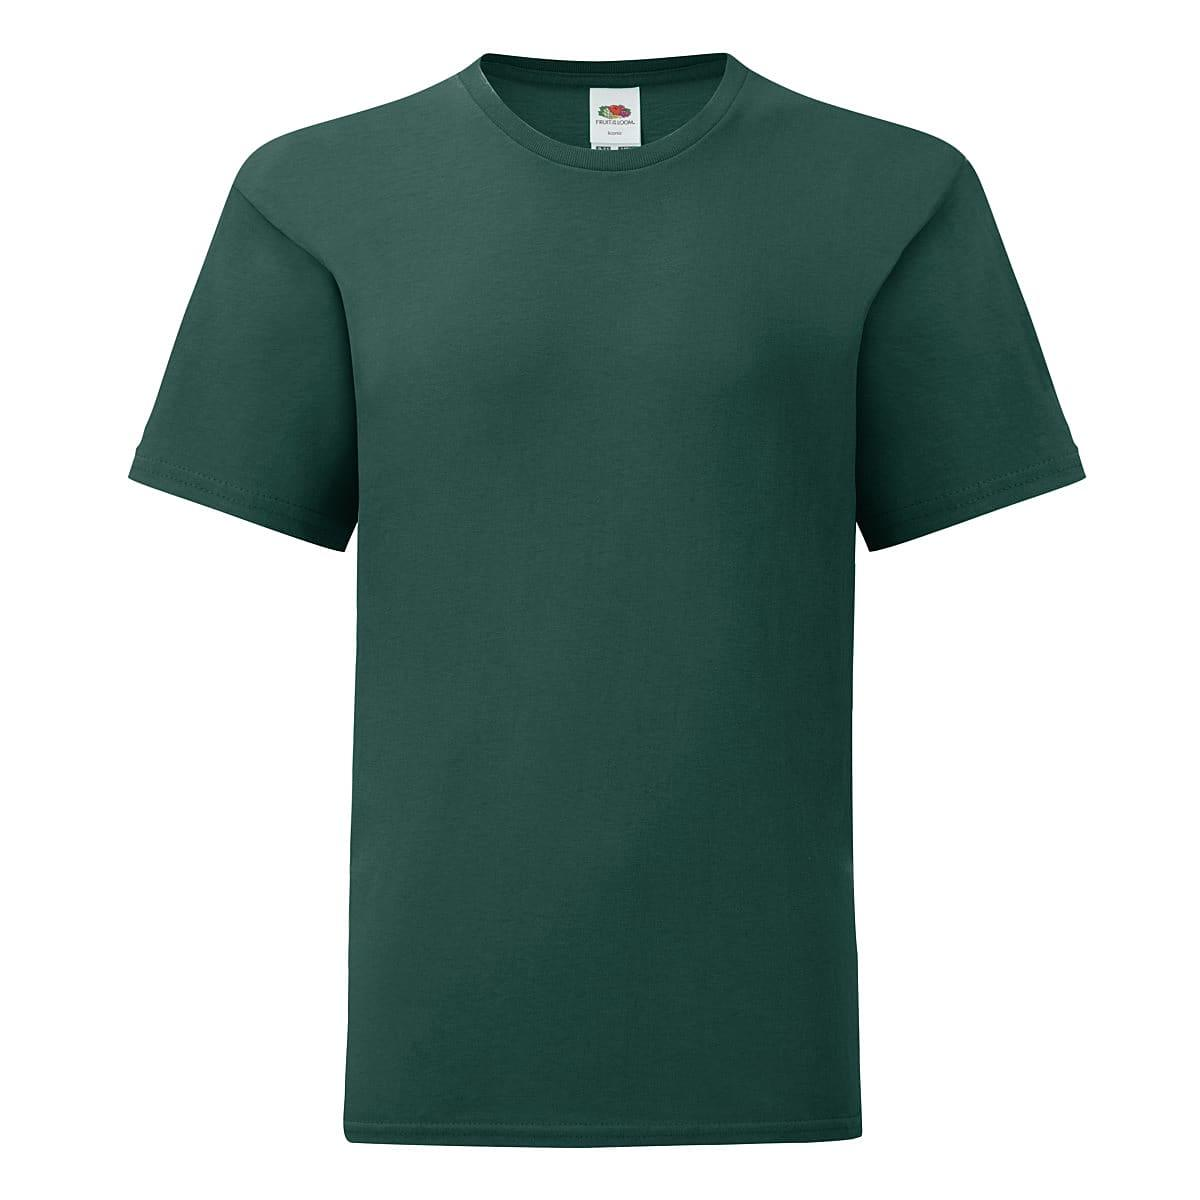 Fruit Of The Loom Kids Iconic T-Shirt in Forest Green (Product Code: 61023)